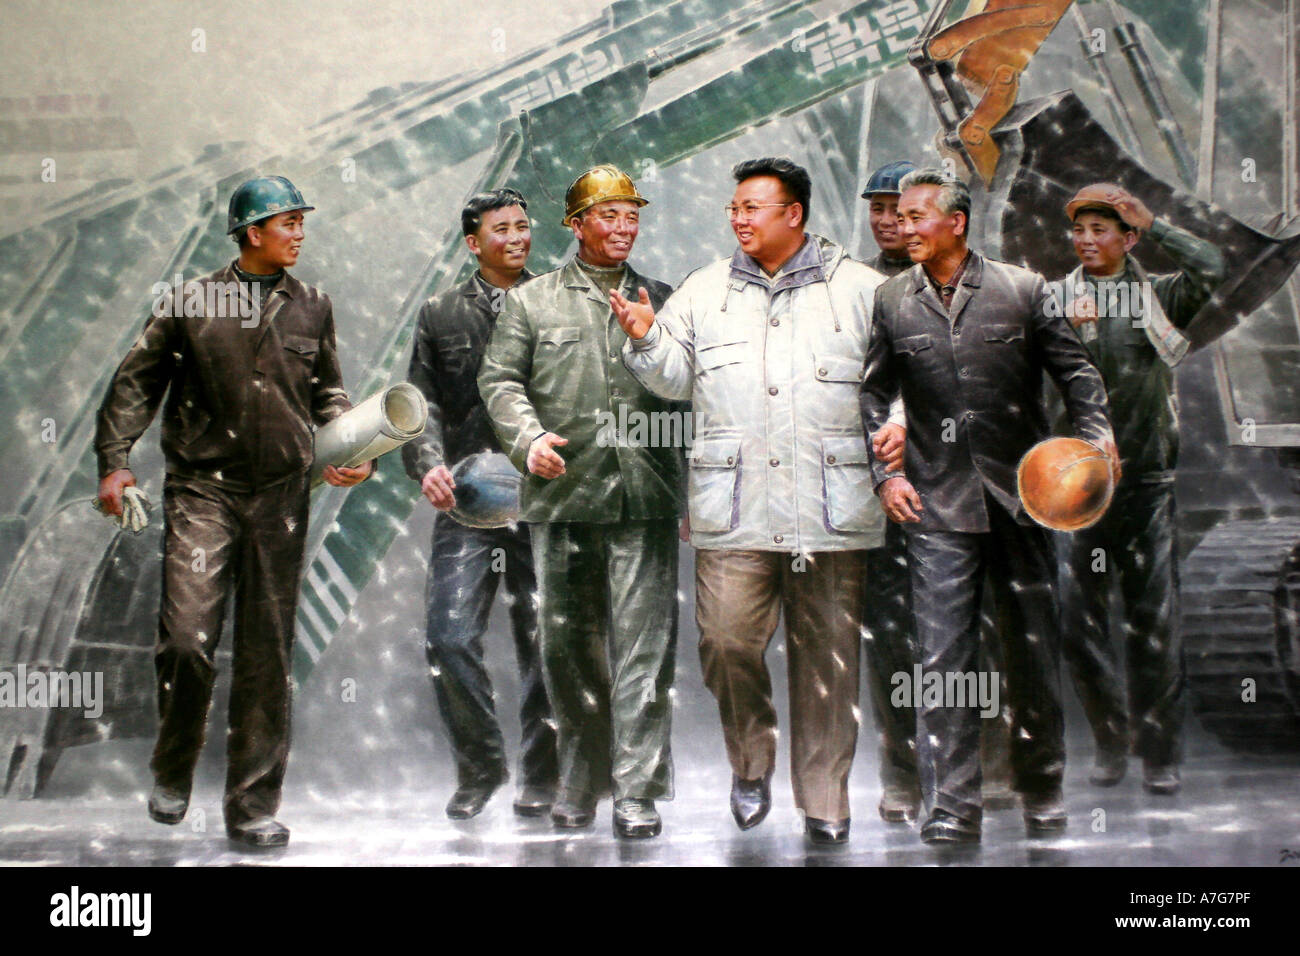 Painting in the Korean Art Museum of leader Kim Jong Il visiting his workers - Stock Image